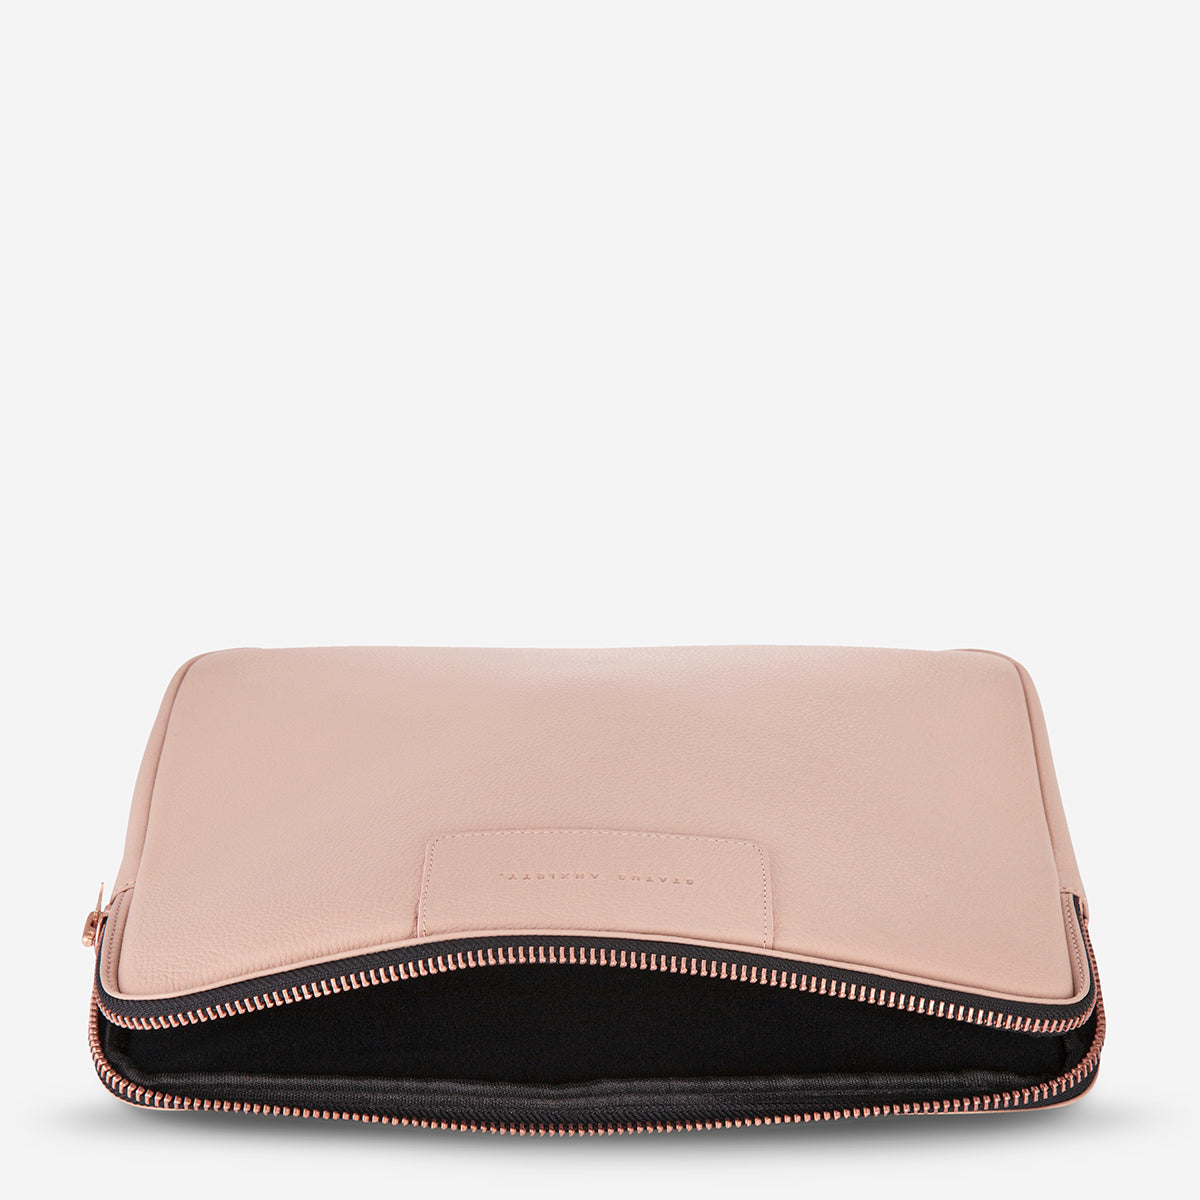 Status Anxiety Before I Leave Leather Laptop Case - Dusty Pink